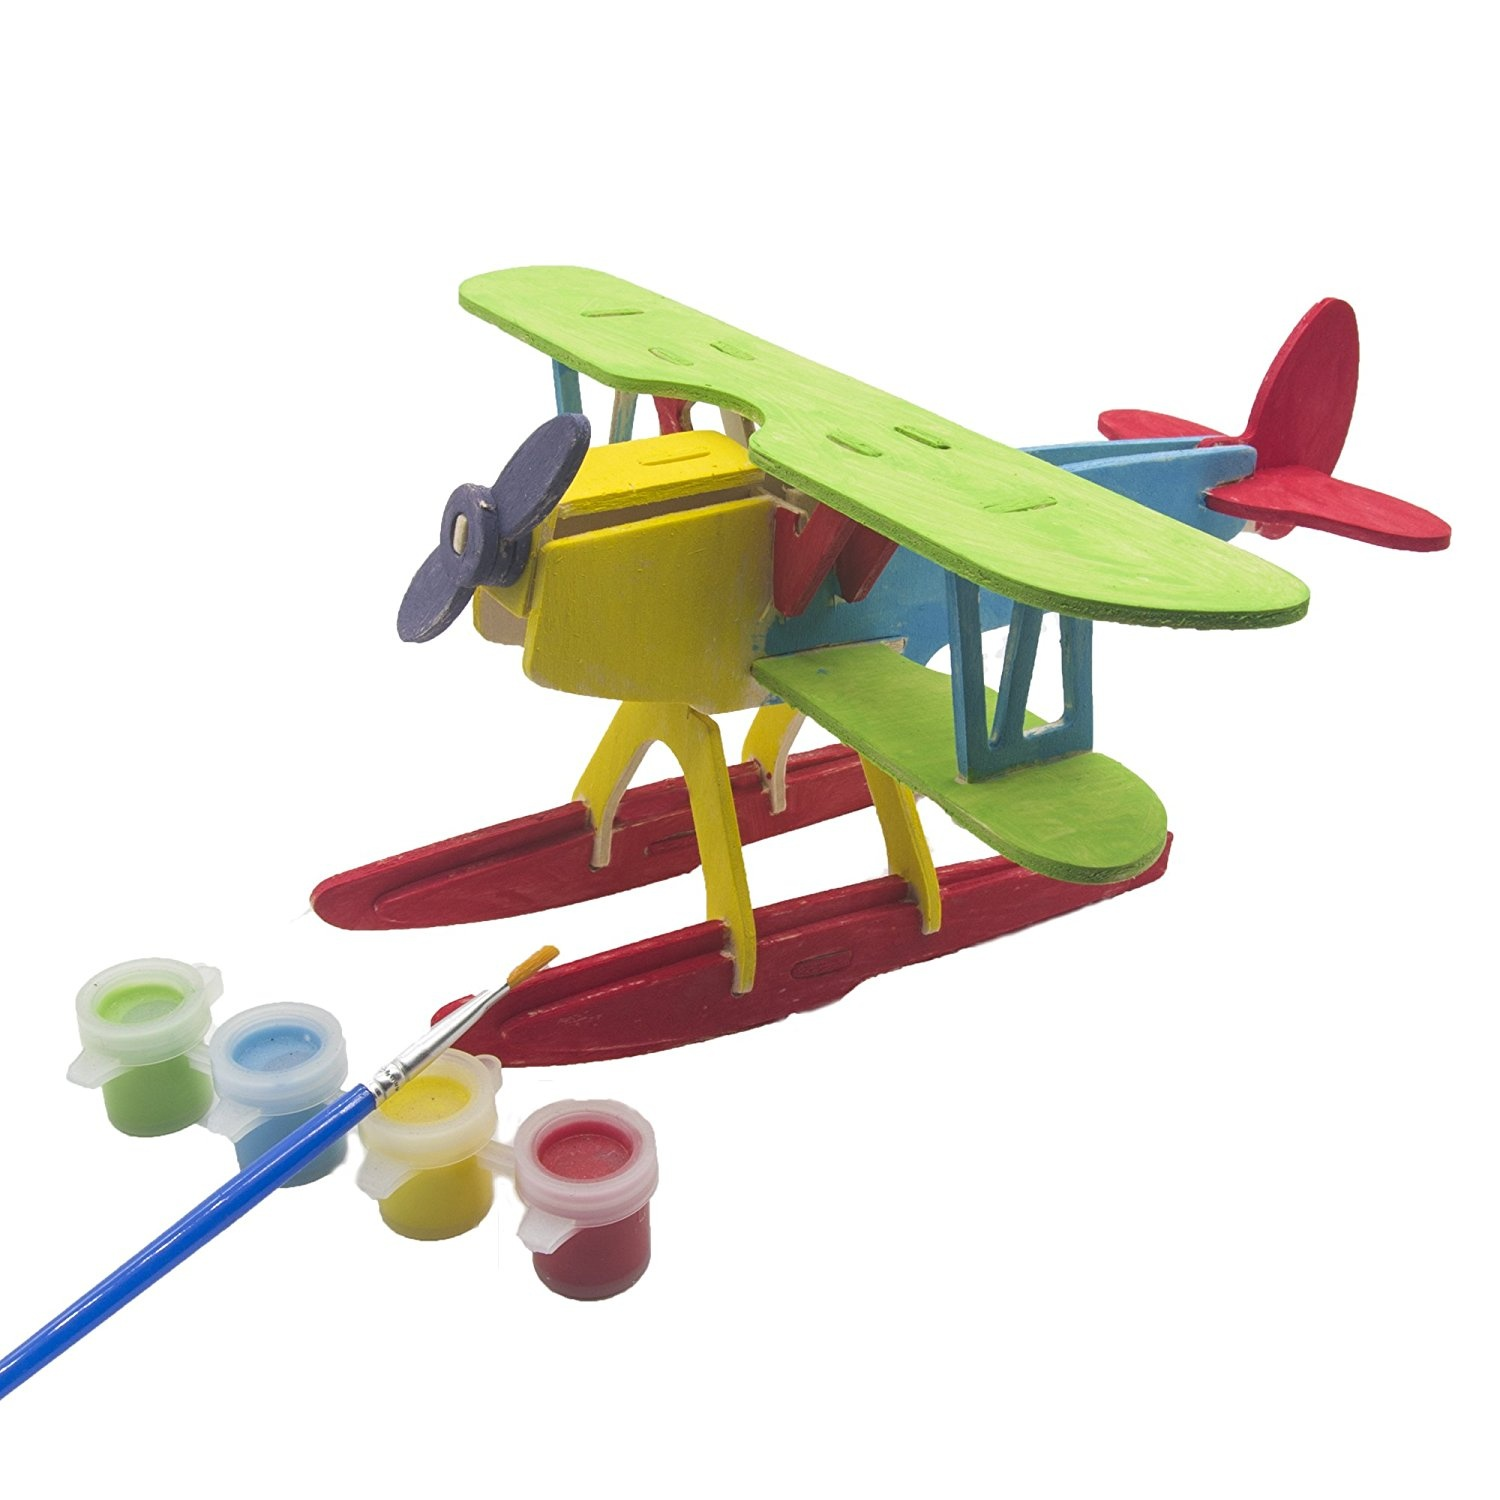 Miscy 3d Puzzle Wooden Plane Art Projects Craft Wood 3d Puzzles for Kids  Adults Wood Model Kits Aeroplanes Assemble Paint DIY Toy Hydropplane